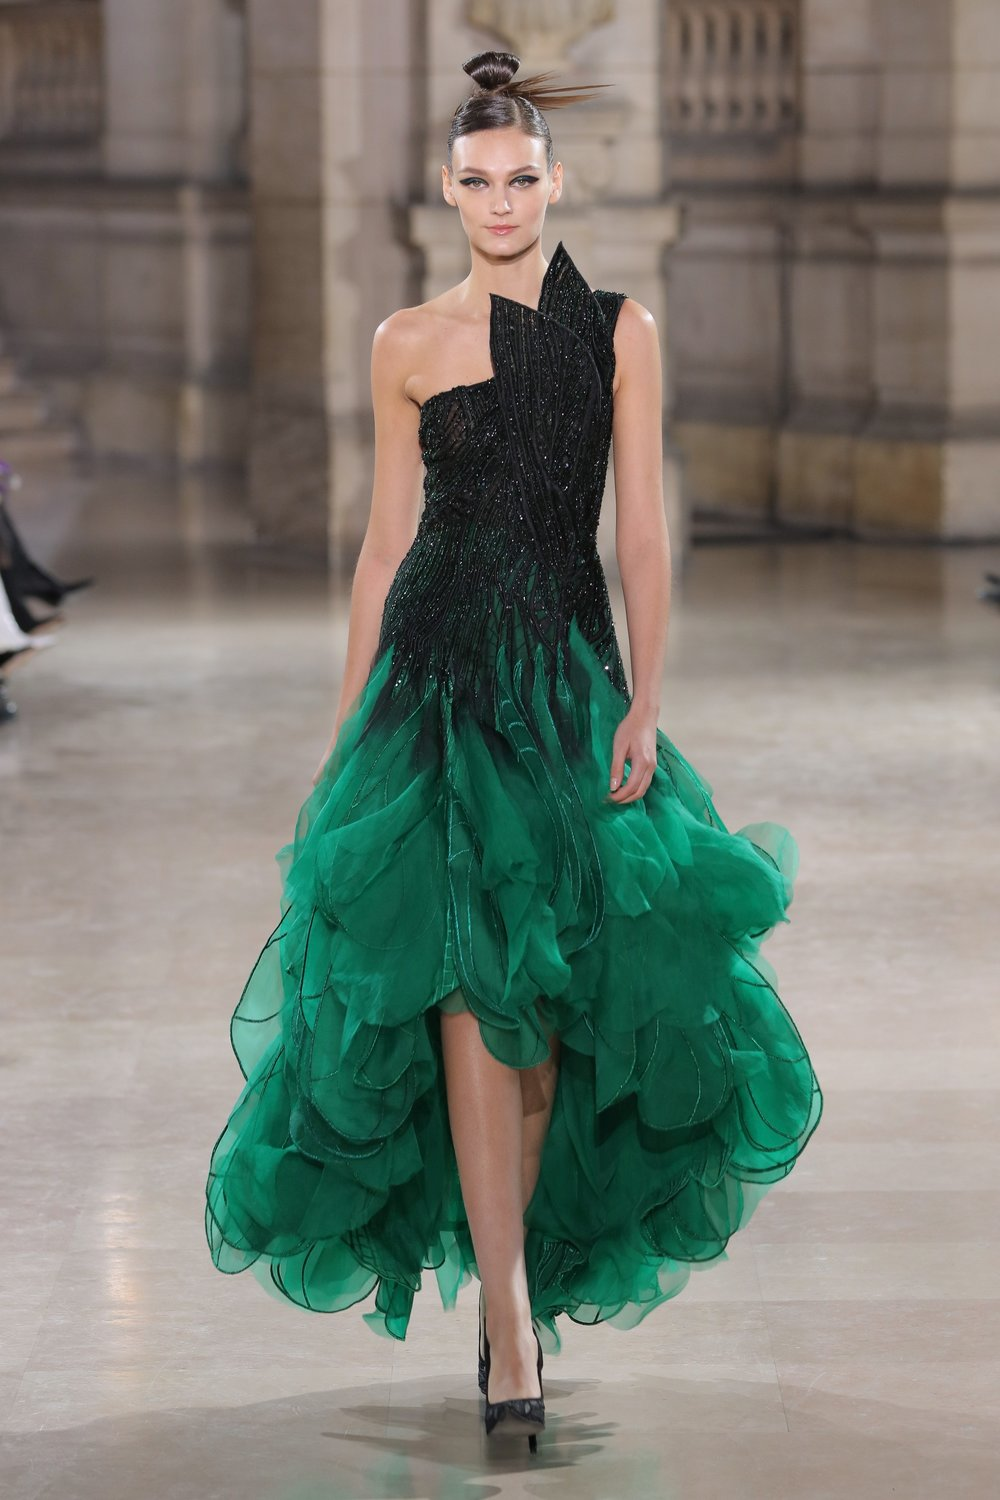 TONY_WARD_COUTURE_SS19_27.jpg